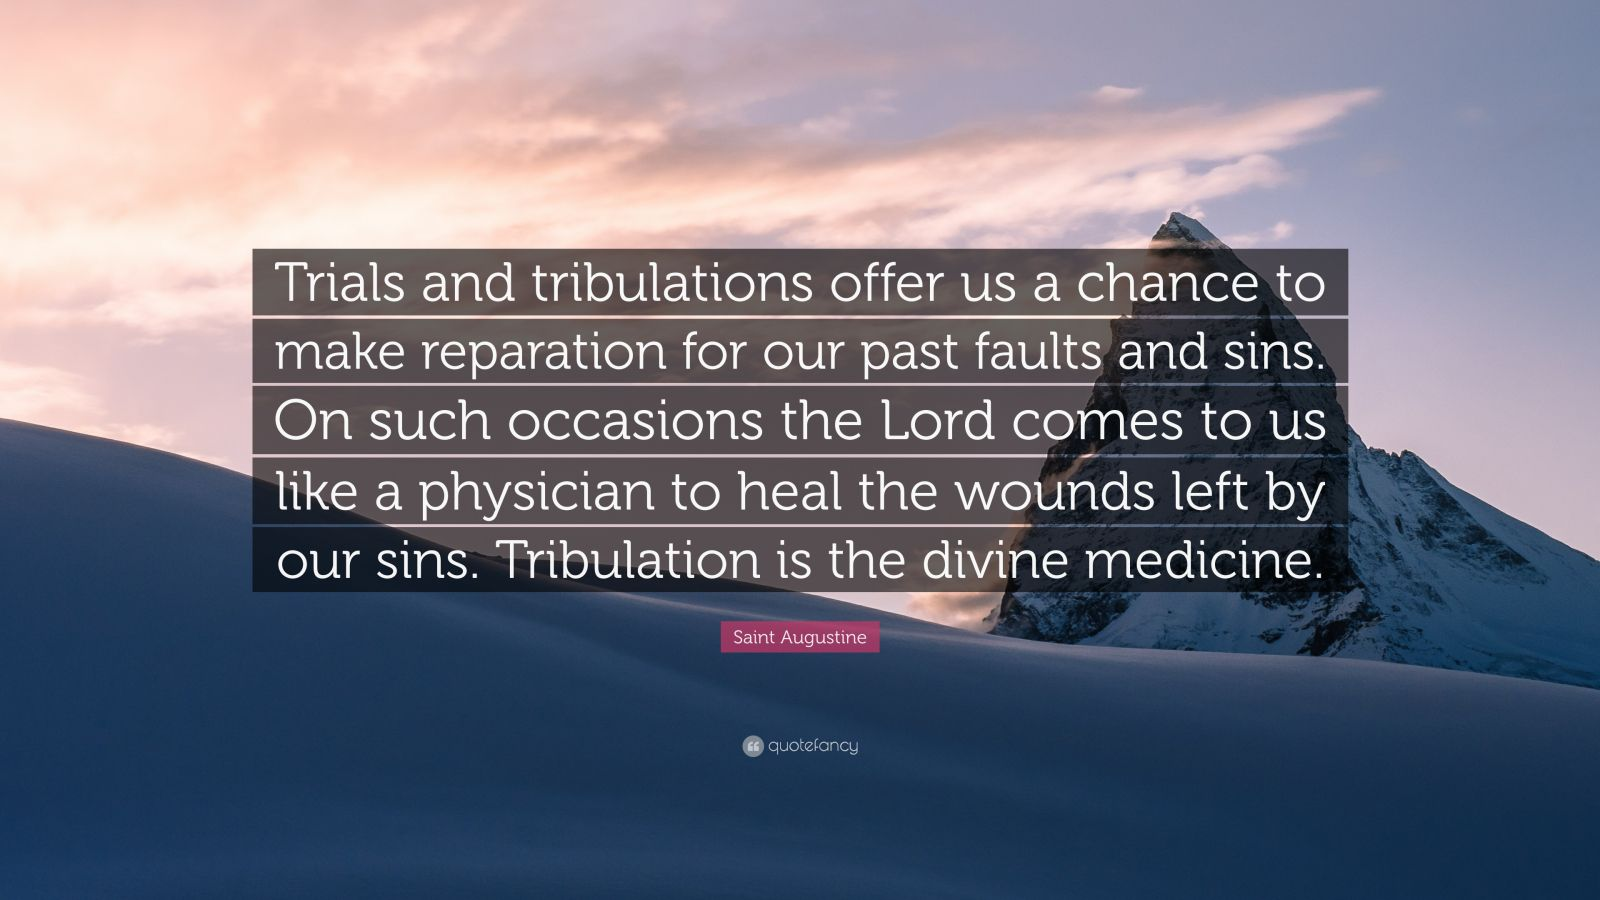 """Saint Augustine Quote: """"Trials and tribulations offer us a chance to make reparation for our past faults and sins. On such occasions the Lord comes to us like a physician to heal the wounds left by our sins. Tribulation is the divine medicine."""""""